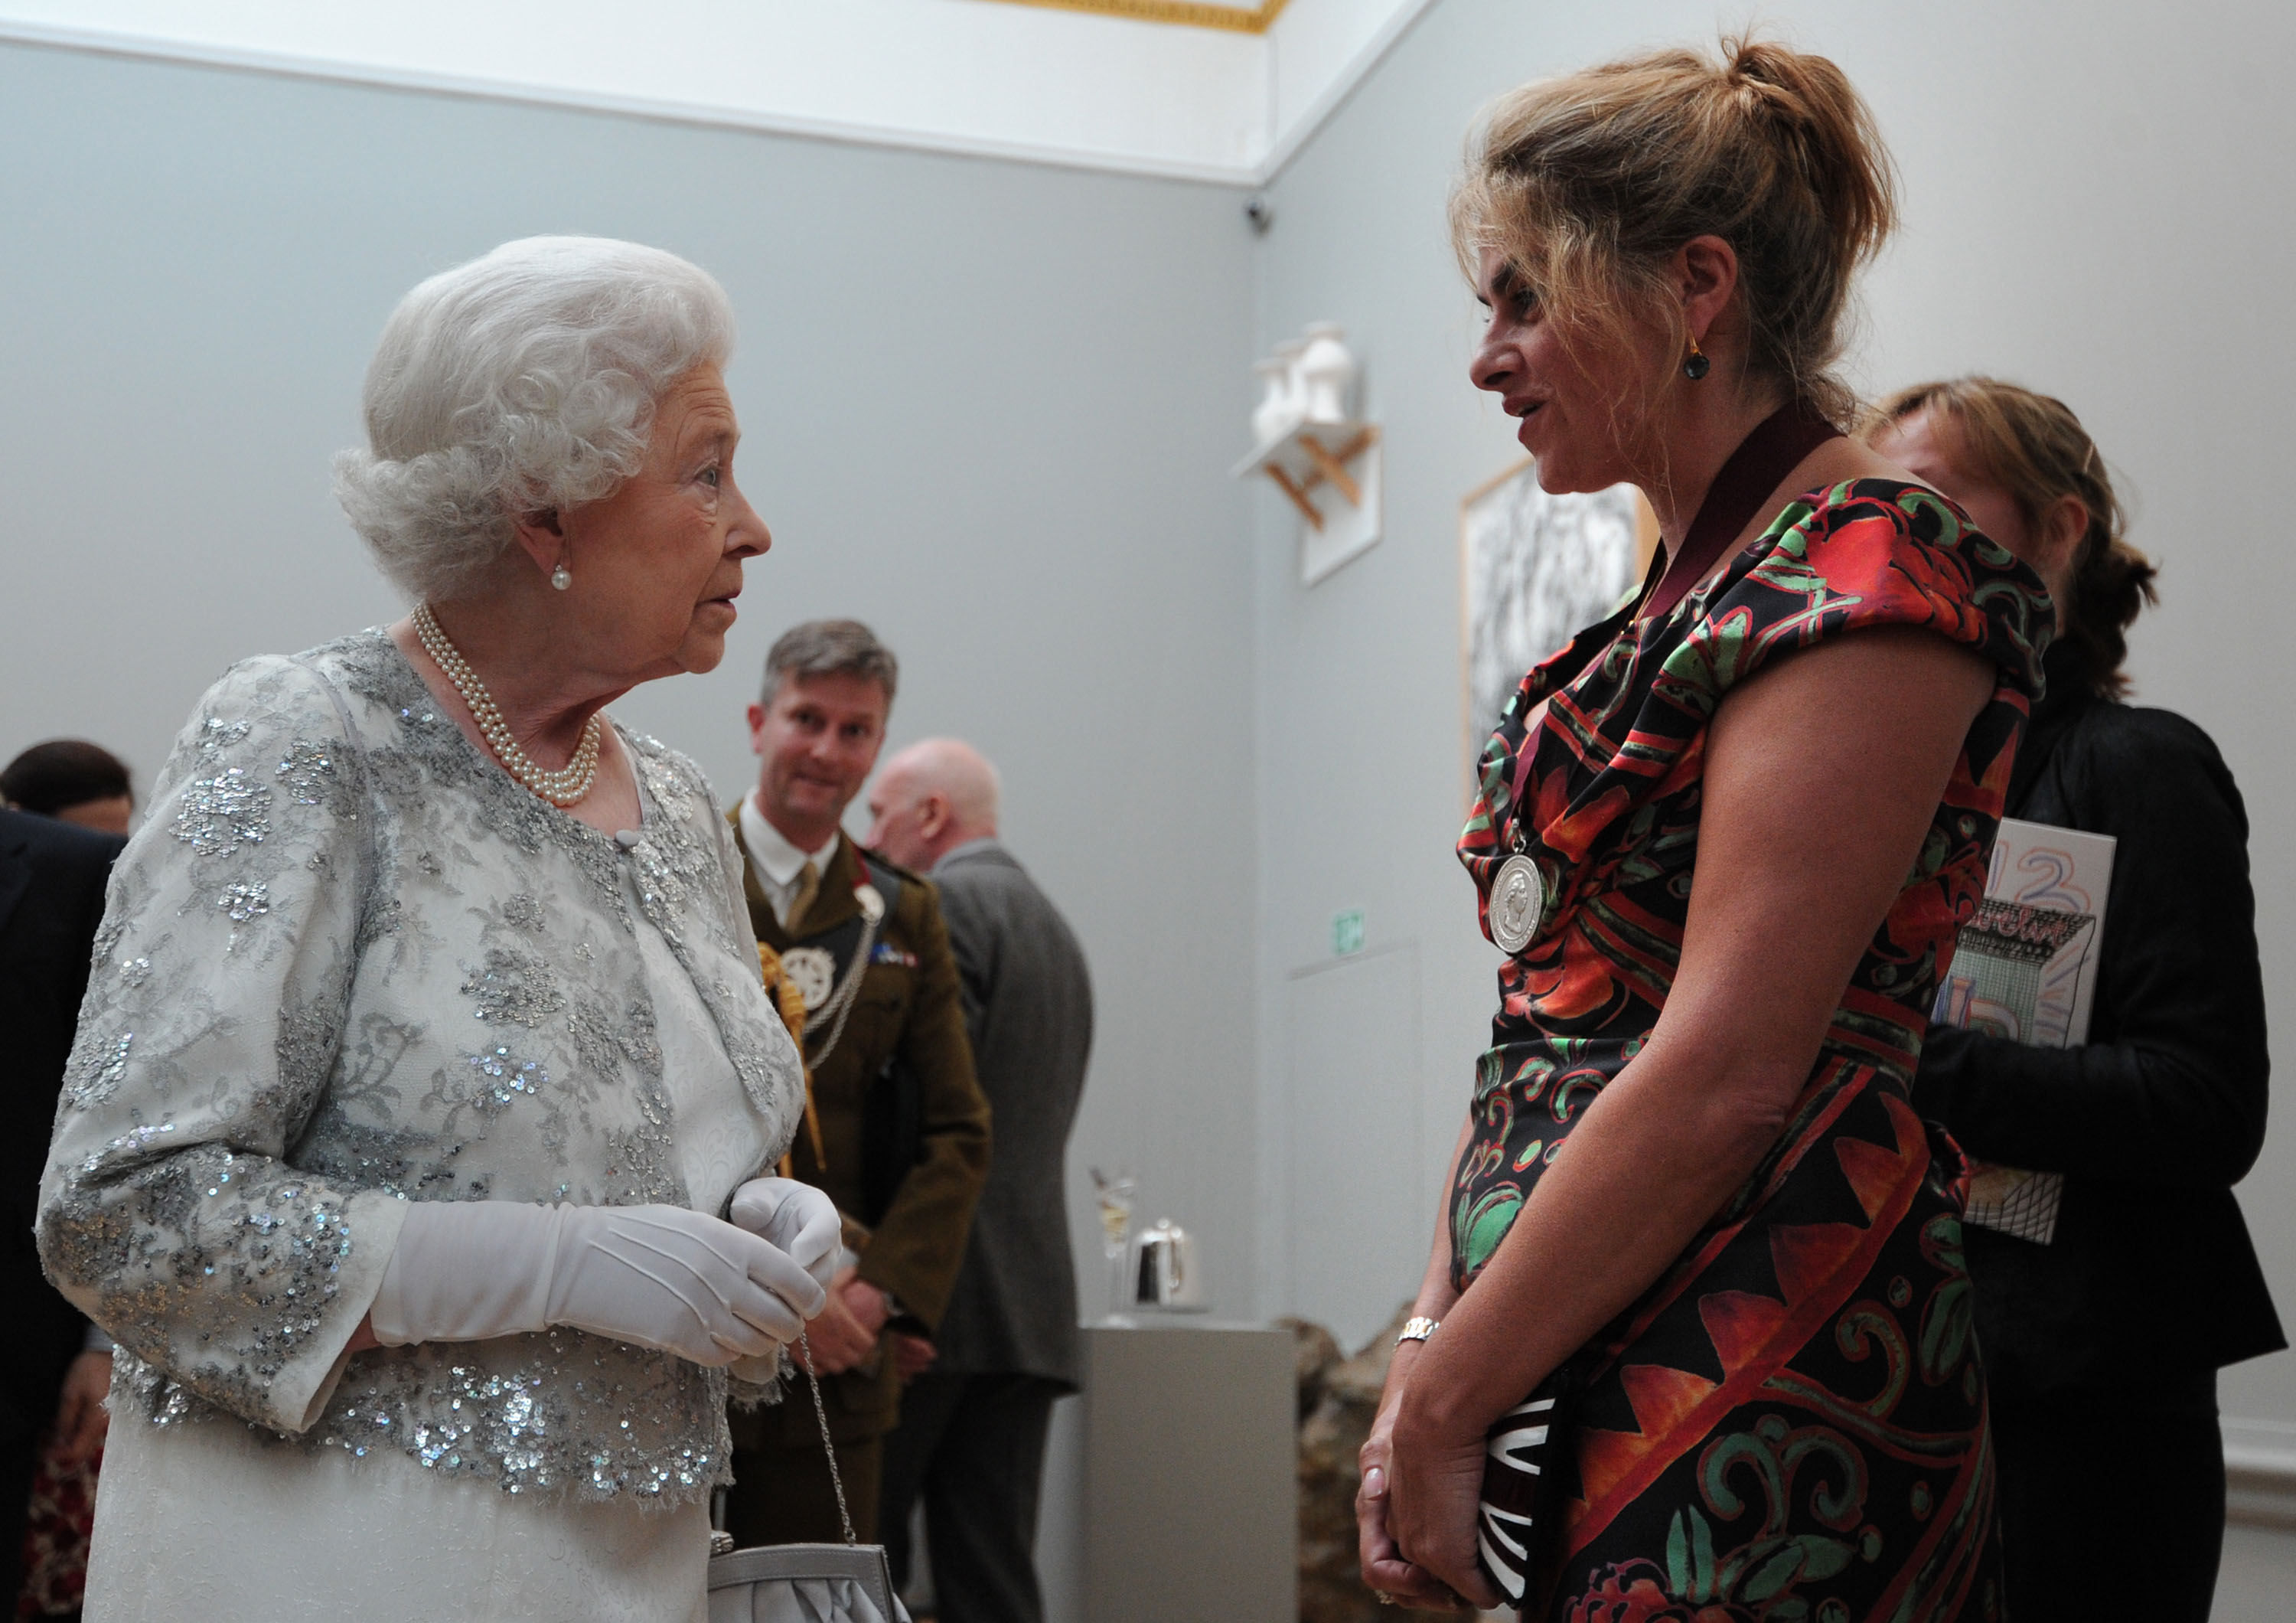 LONDON, ENGLAND - MAY 23:  HRH Queen Elizabeth II meets artist Tracey Emin  at a special 'Celebration of the Arts' event at the Royal Academy of Arts on May 23, 2012 in London, England.  (Photo by Carl Court - WPA Pool/Getty Images)